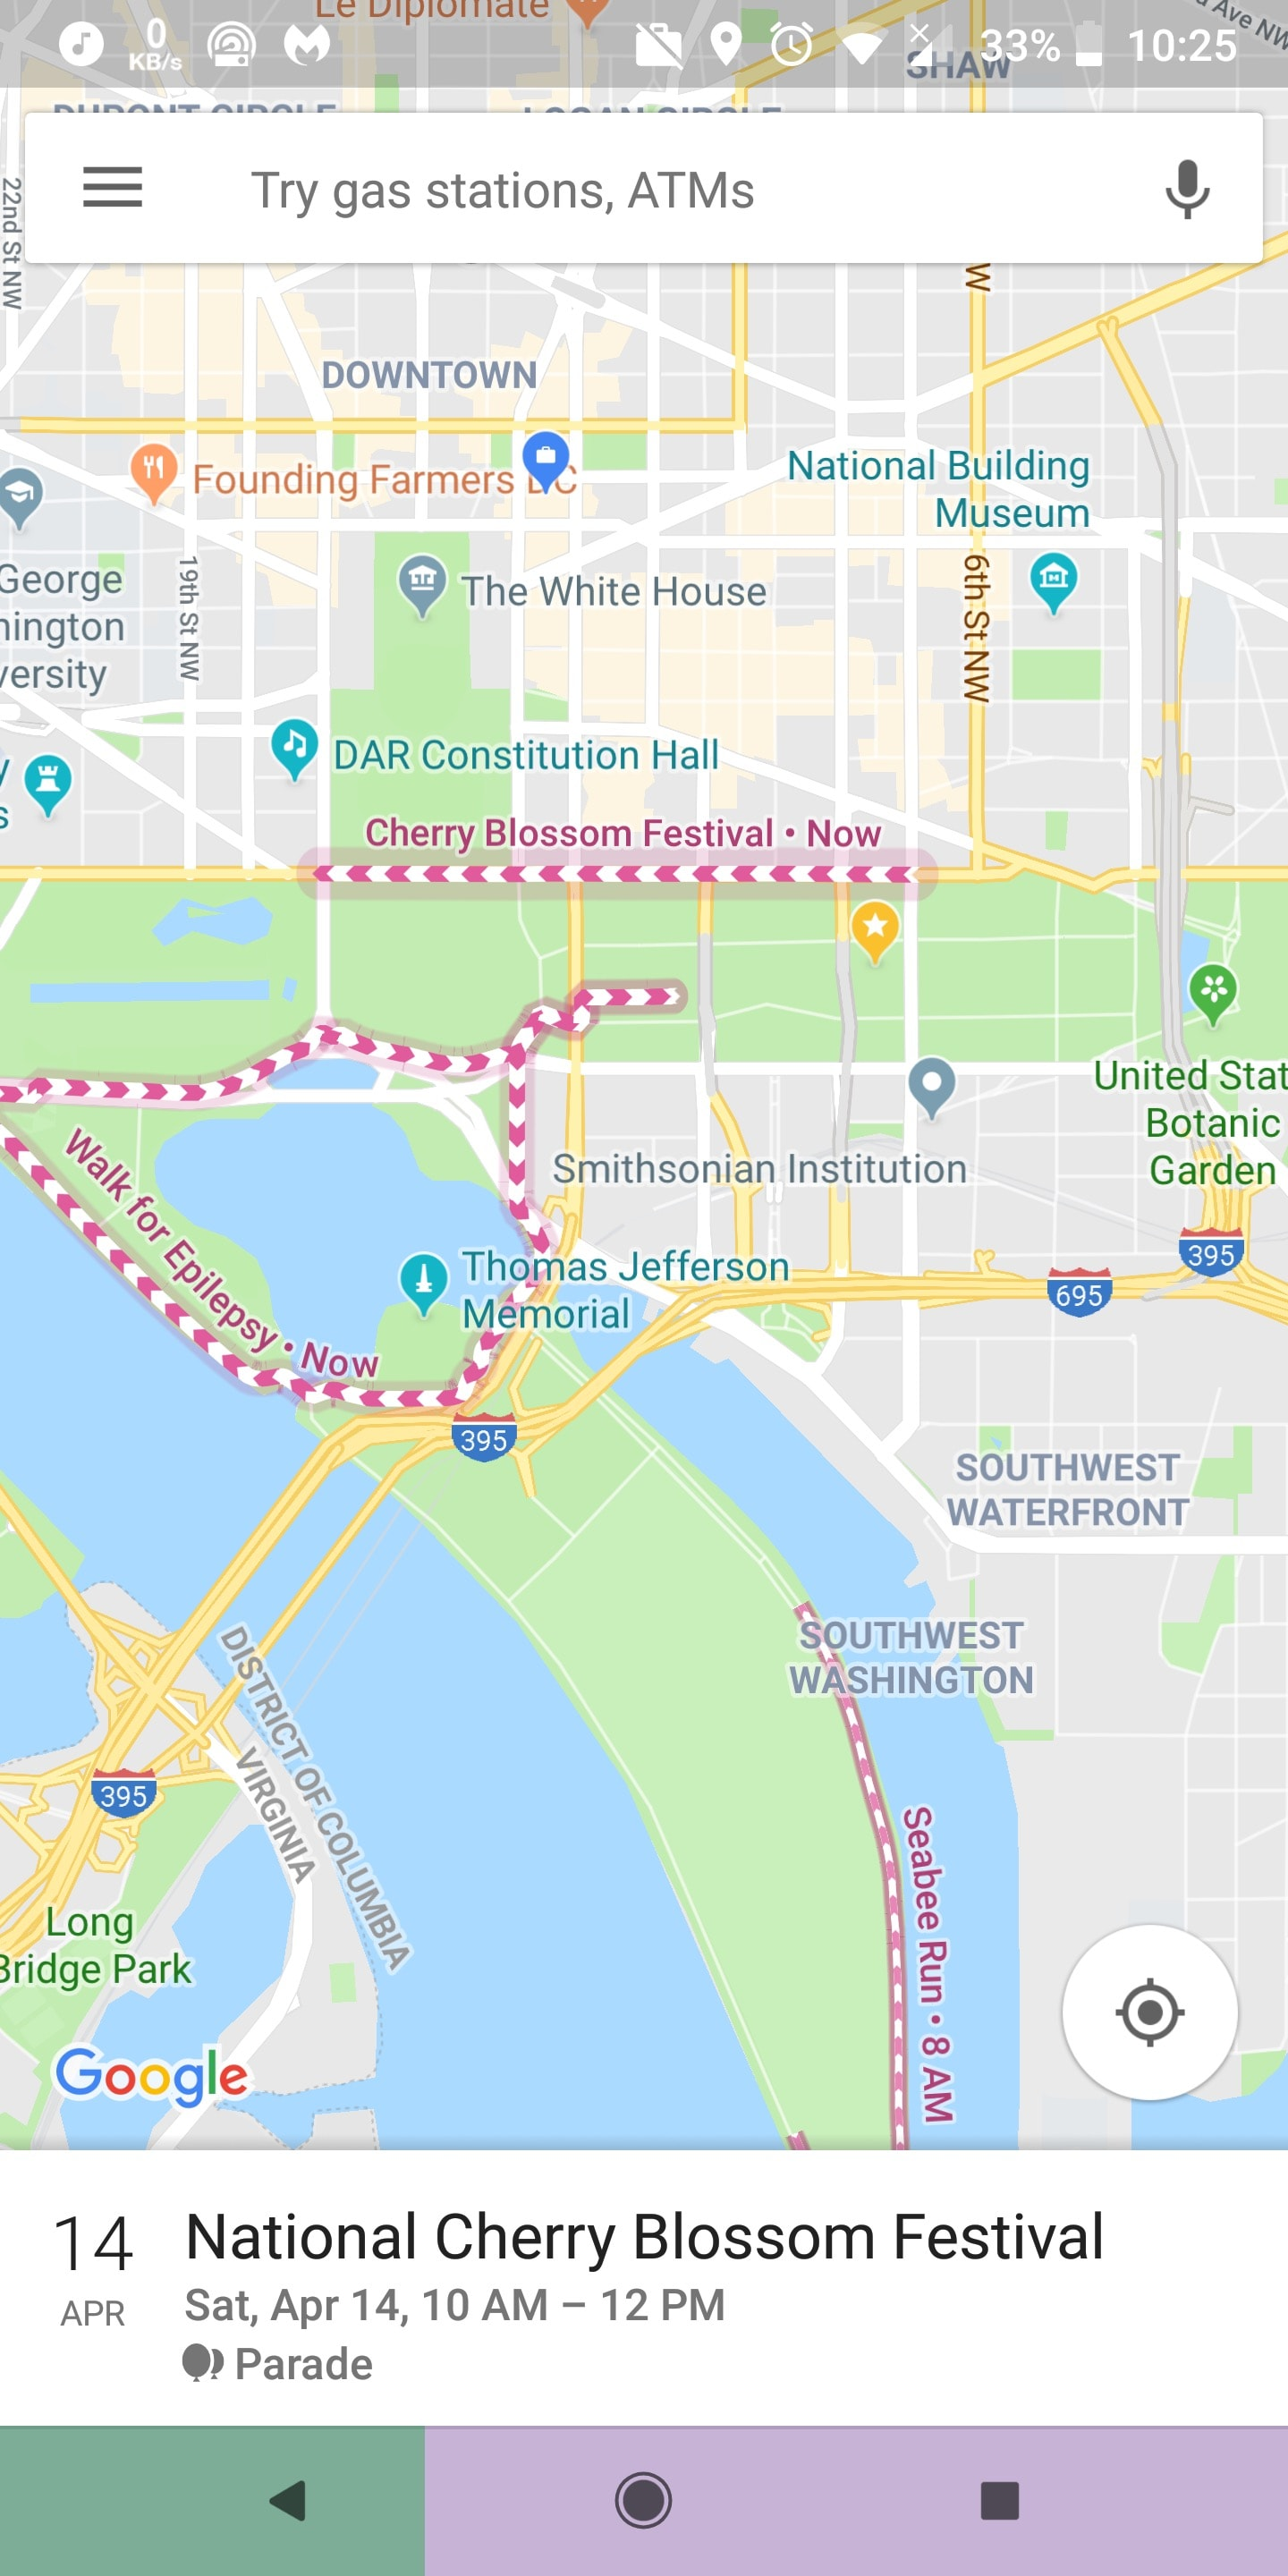 Google Maps Highlights Public Events Currently In Progress